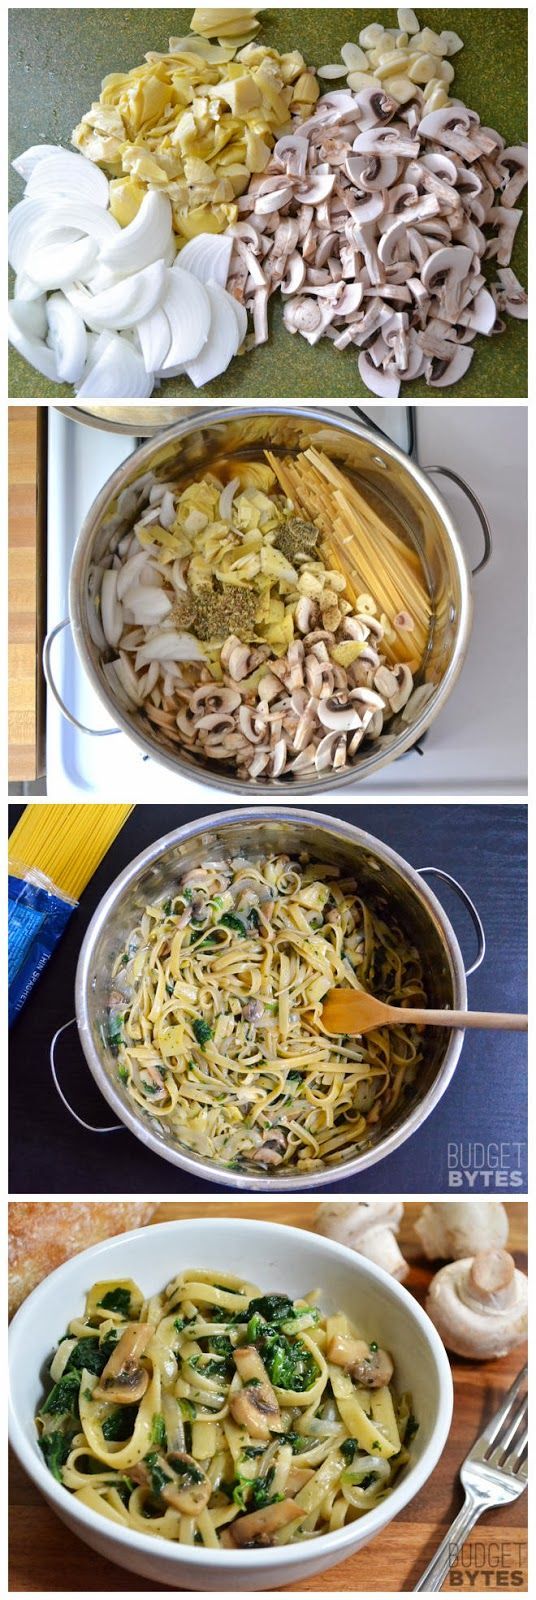 Spinach & Artichoke Wonderpot - use any veggies and add chicken: simple one step pasta dish where the pasta and all the ingredients cook tog...